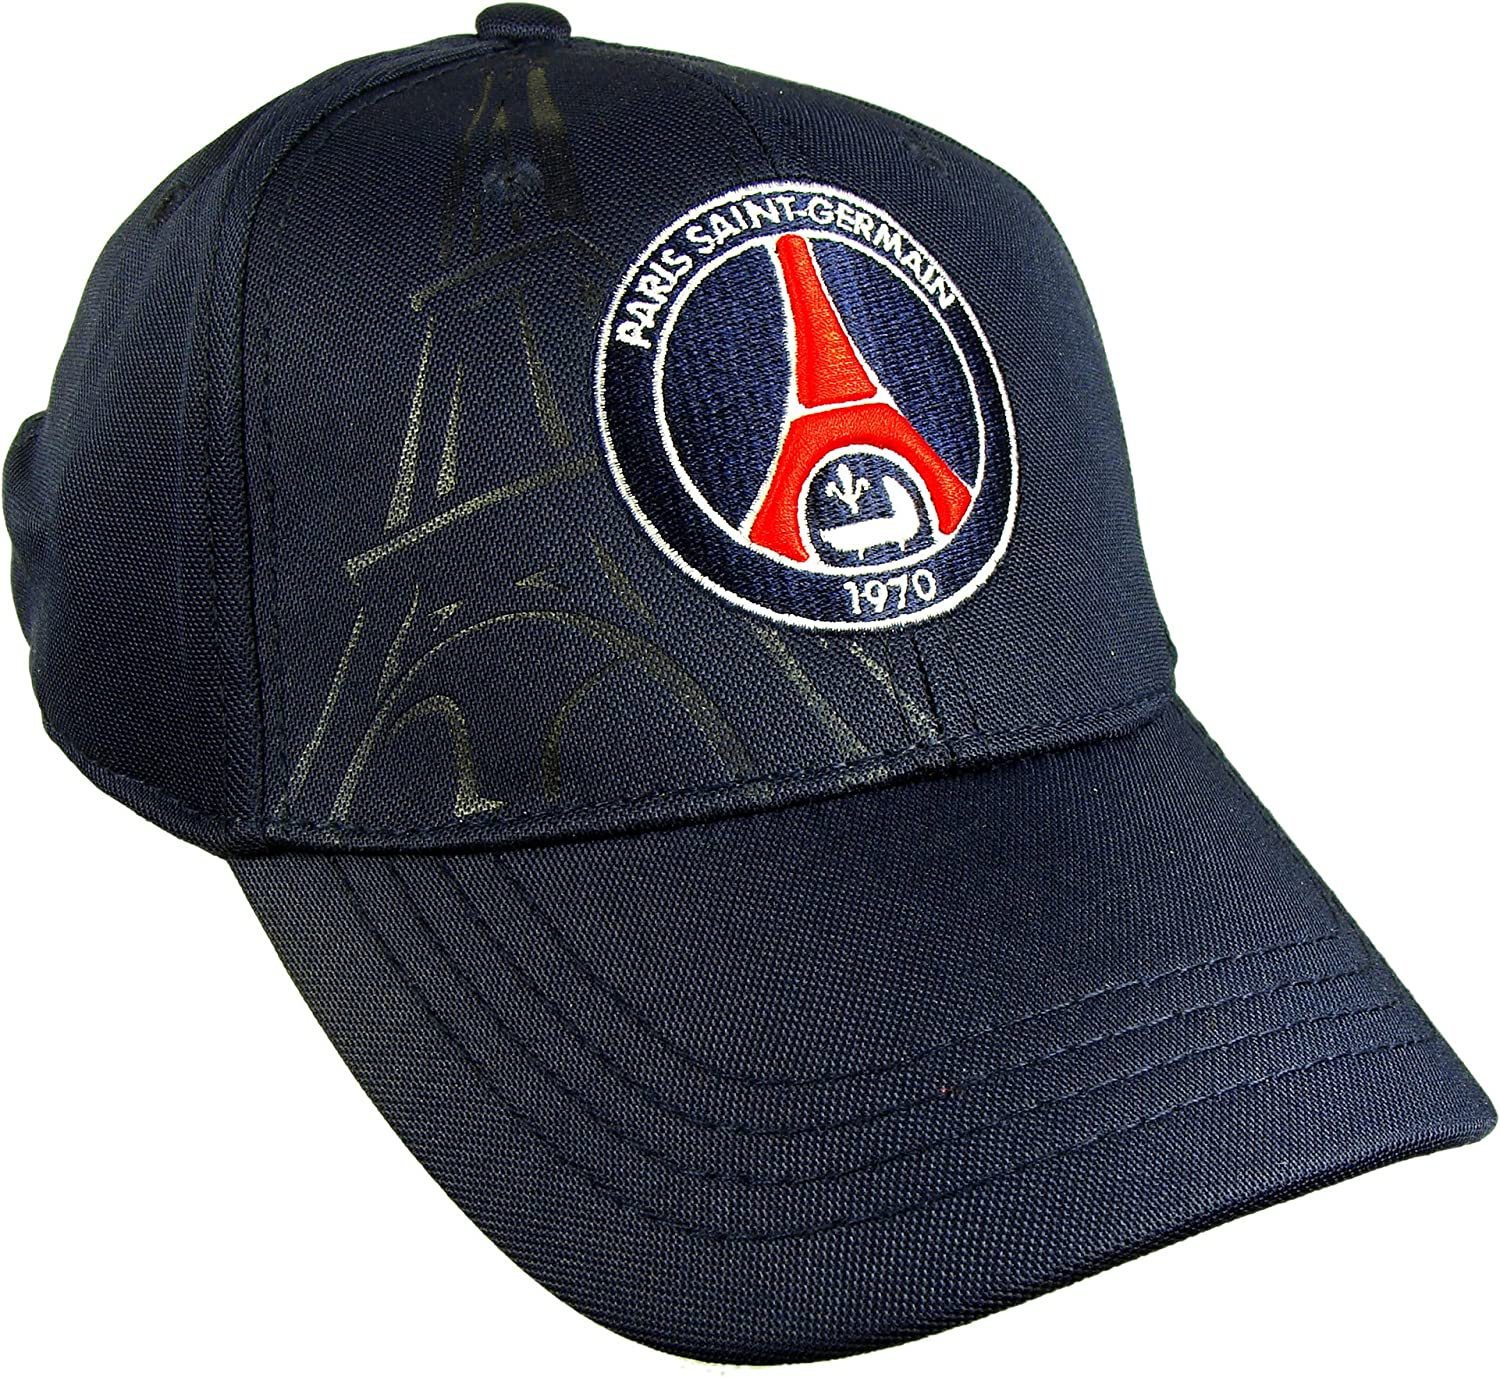 Psg Official Paris Saint Germain Eiffel Tower Men S Cap Adjustable Size At Amazon Men S Clothing Store Baseball Caps